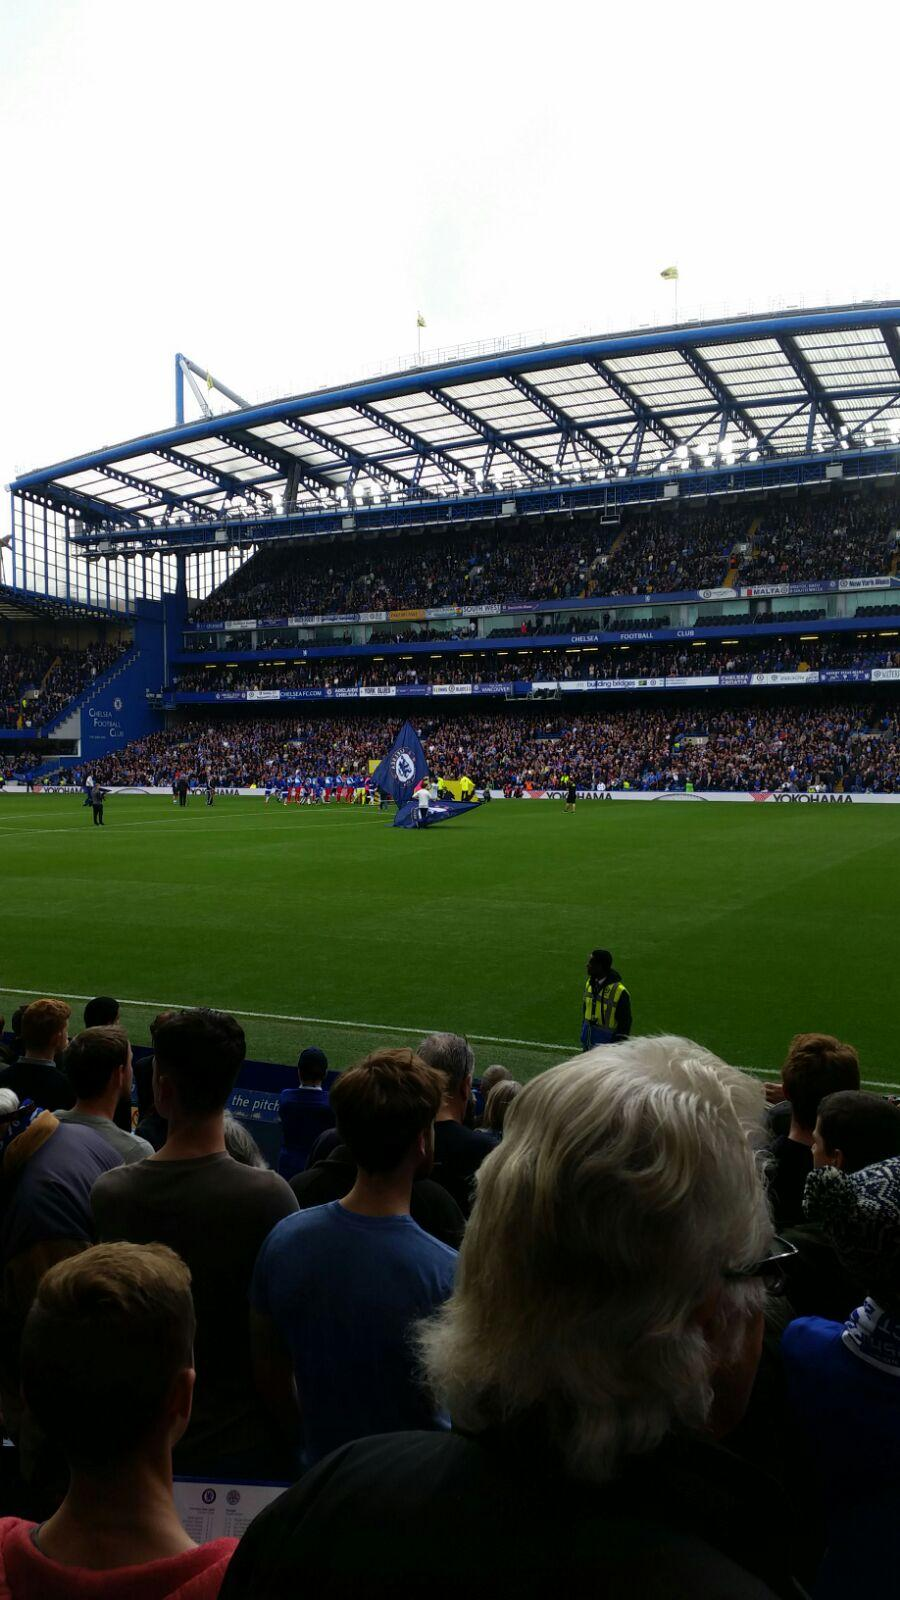 Stamford Bridge Section East Lower North Row O Seat 172